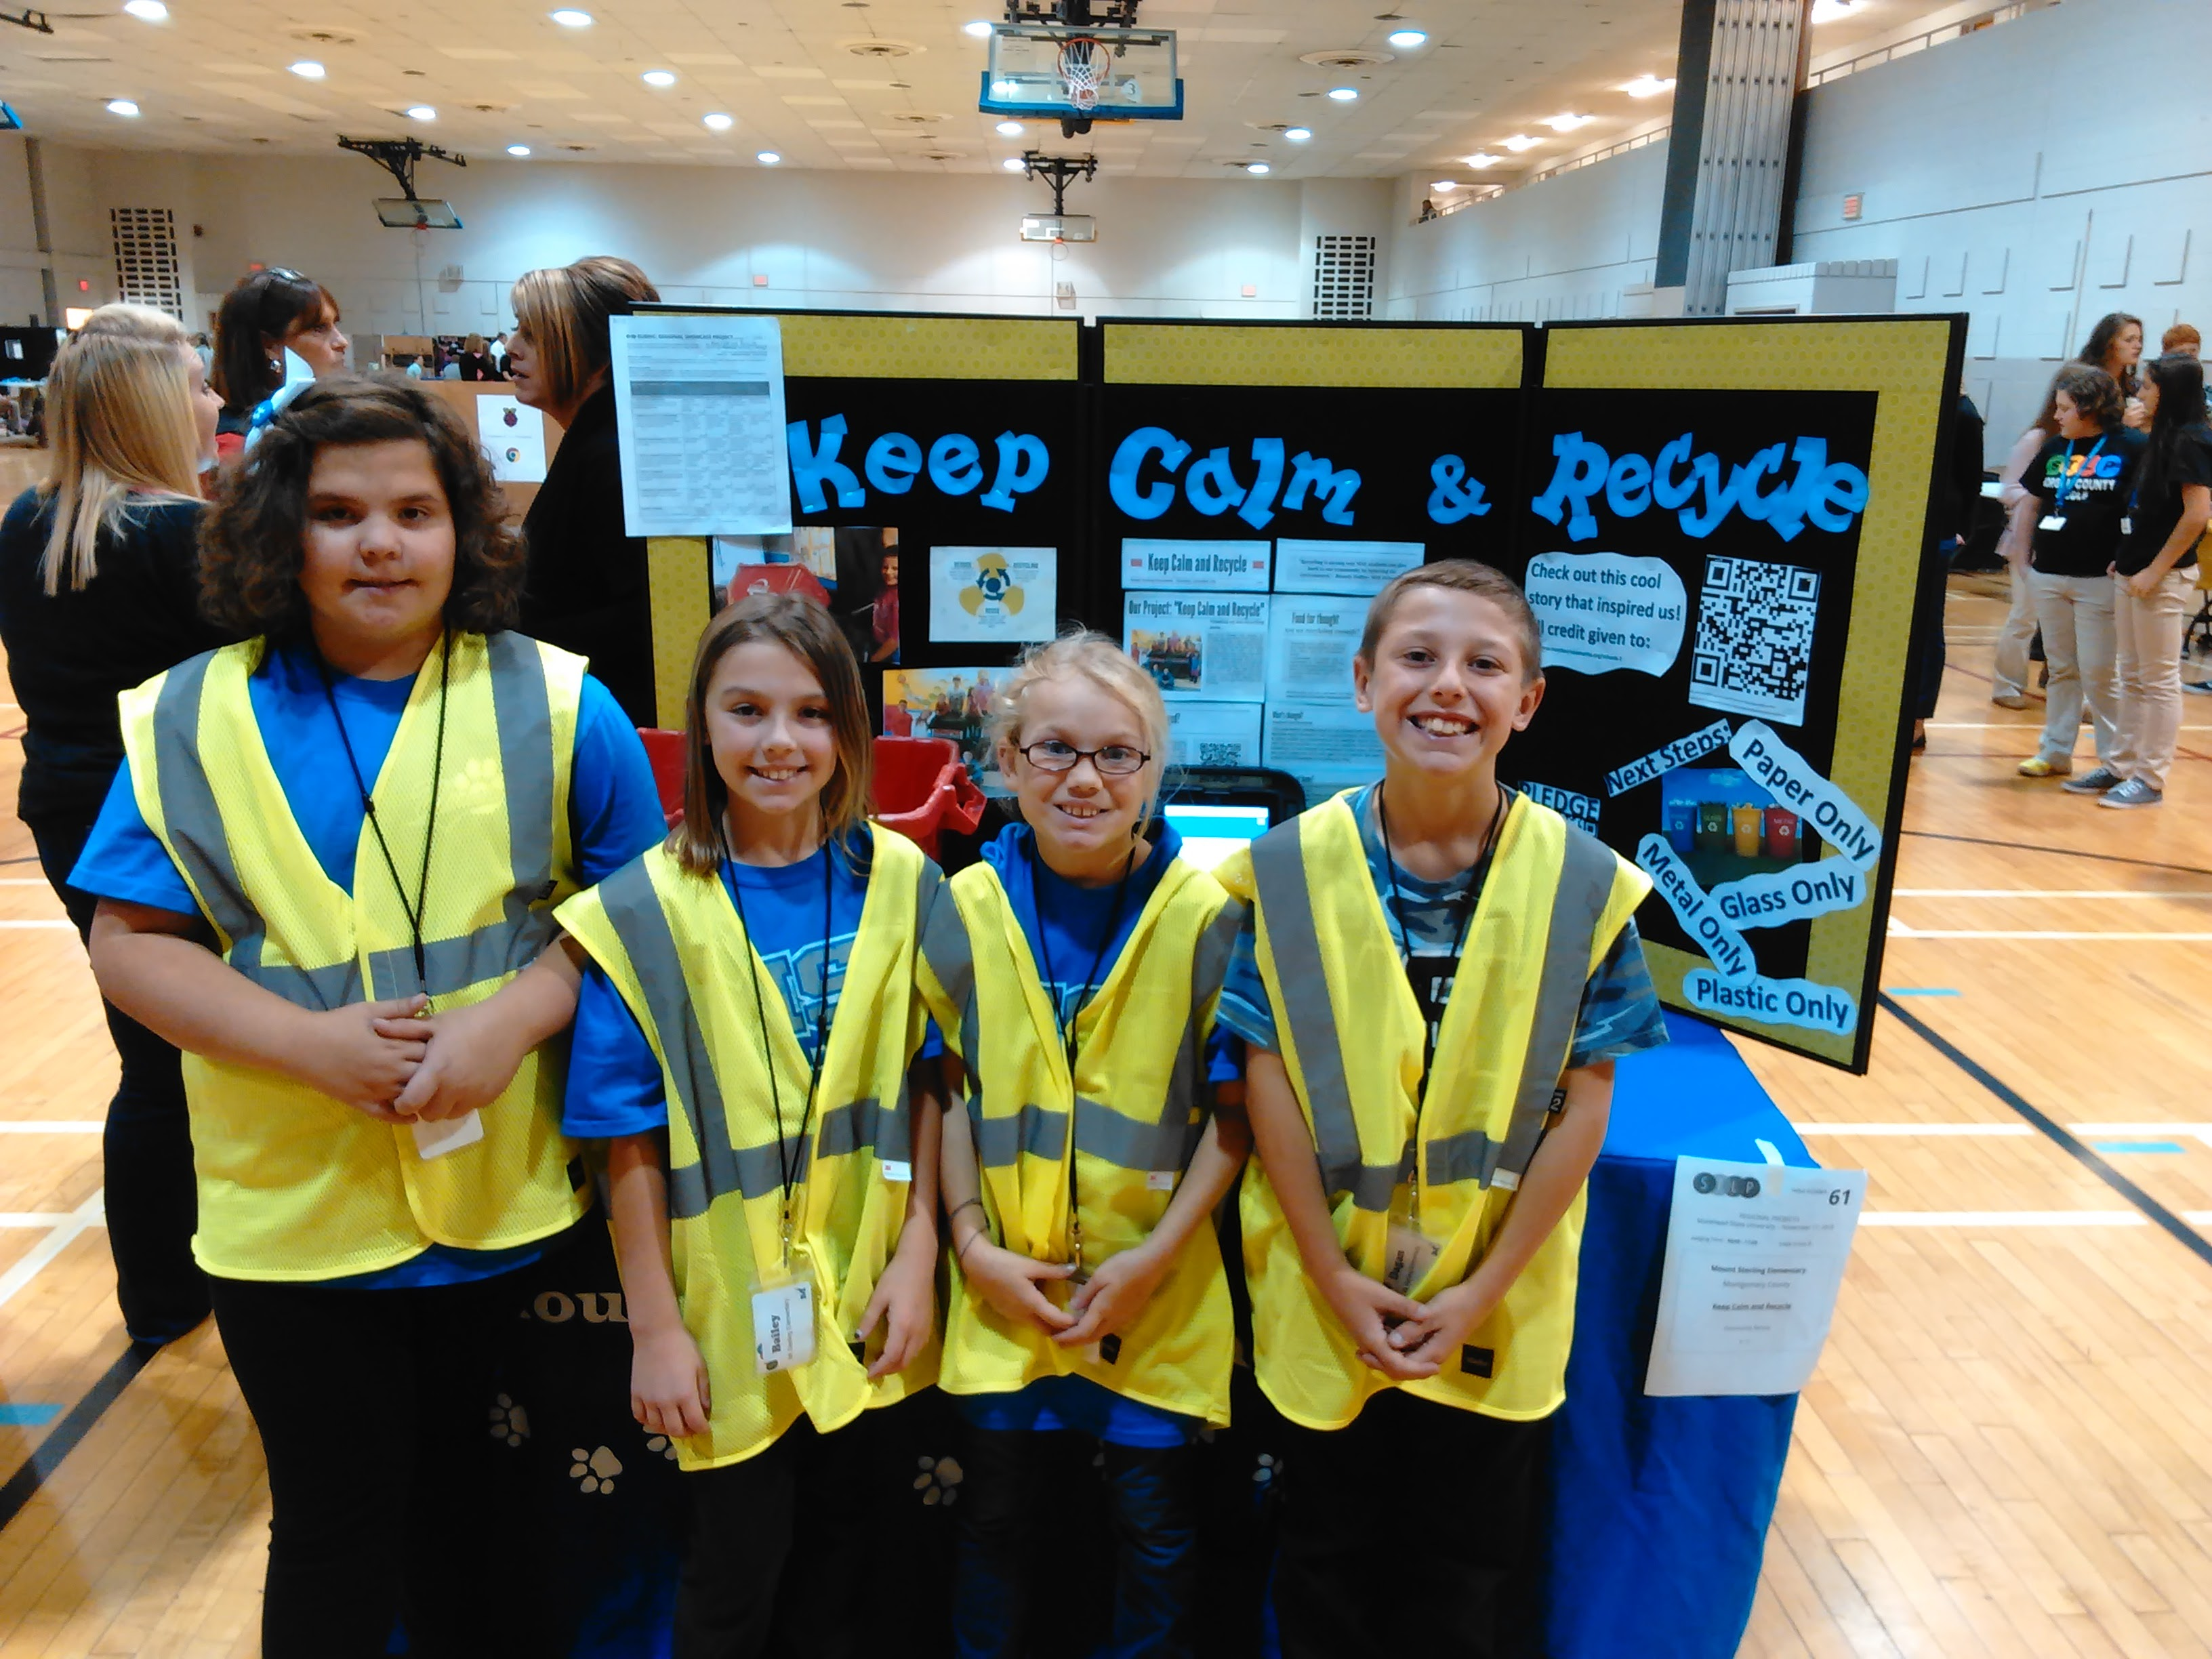 MSE students competing in Regional Competition at Morehead State University